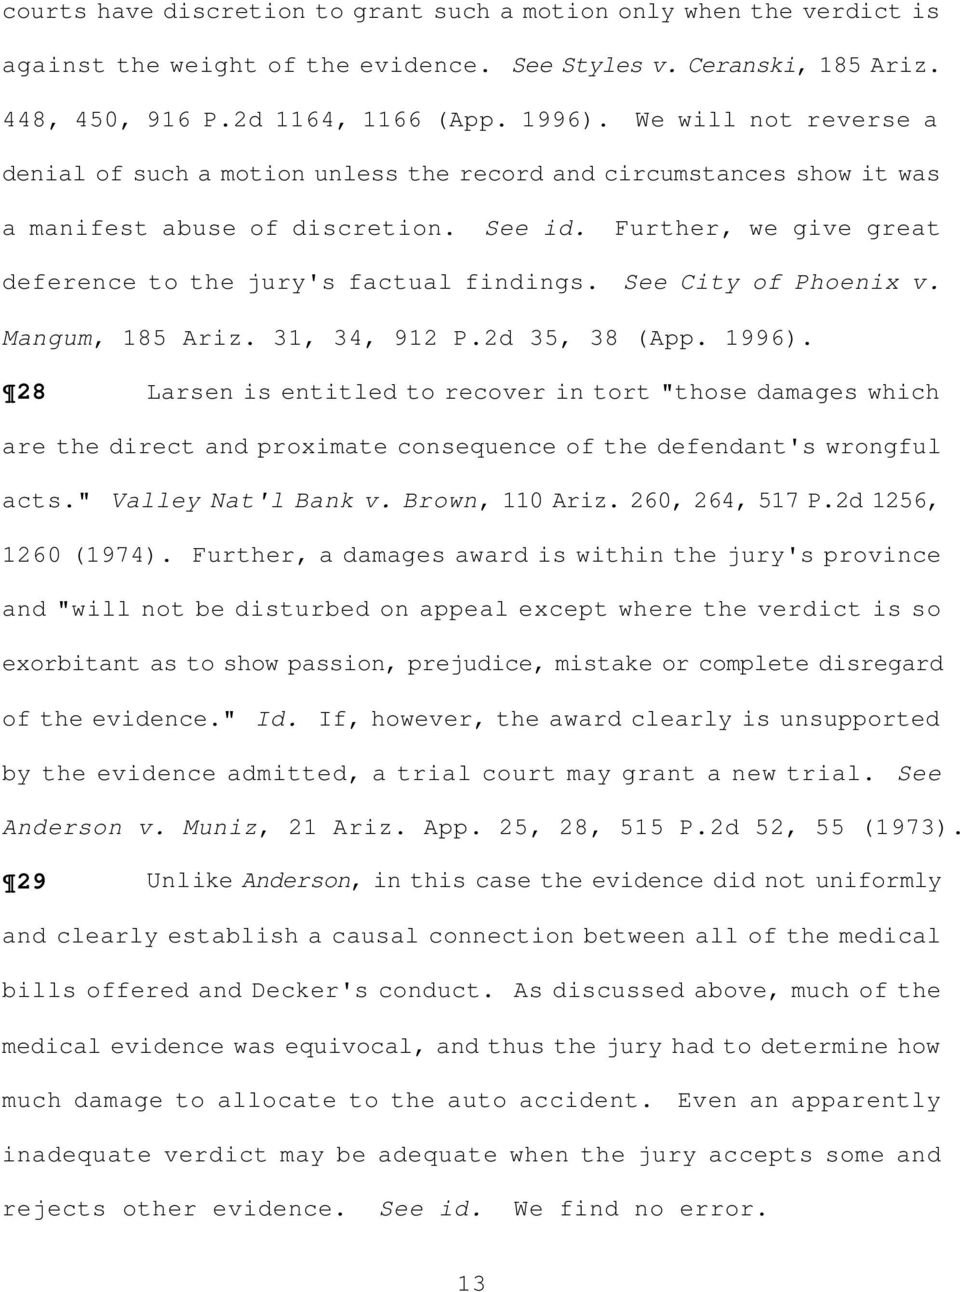 See City of Phoenix v. Mangum, 185 Ariz. 31, 34, 912 P.2d 35, 38 (App. 1996).